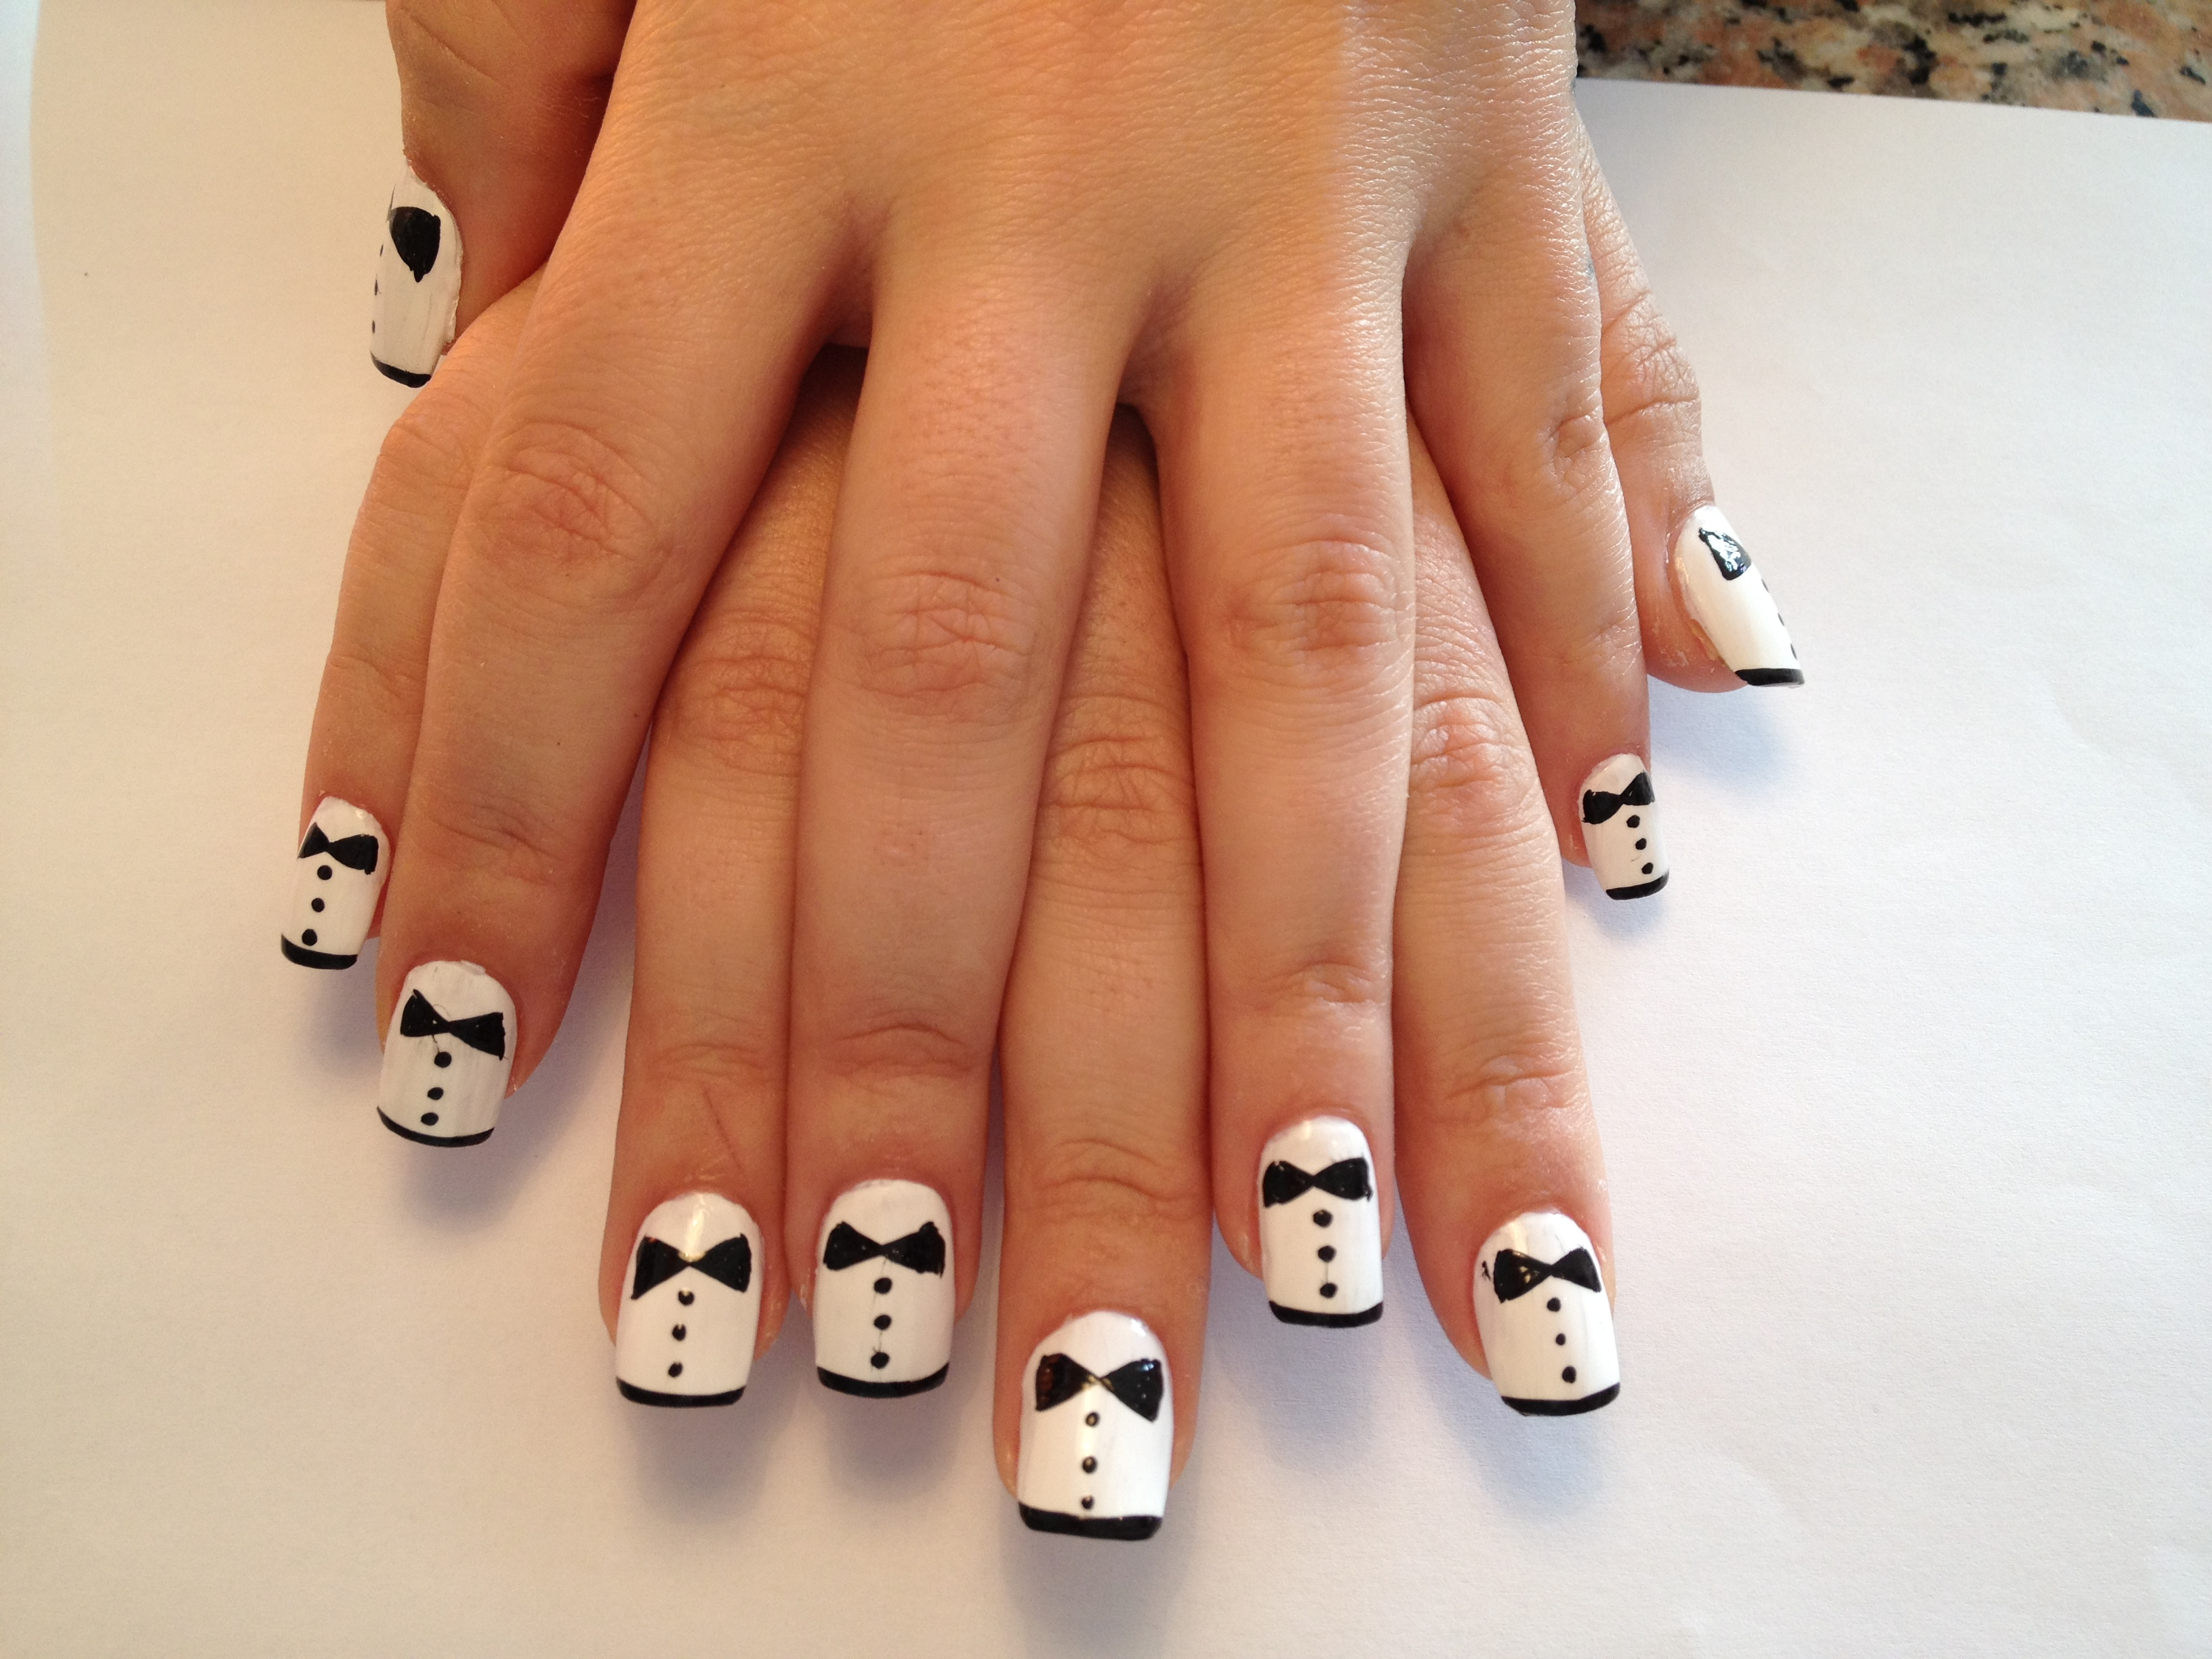 Bow tie nail art designs best nails 2018 bow tie prinsesfo Choice Image